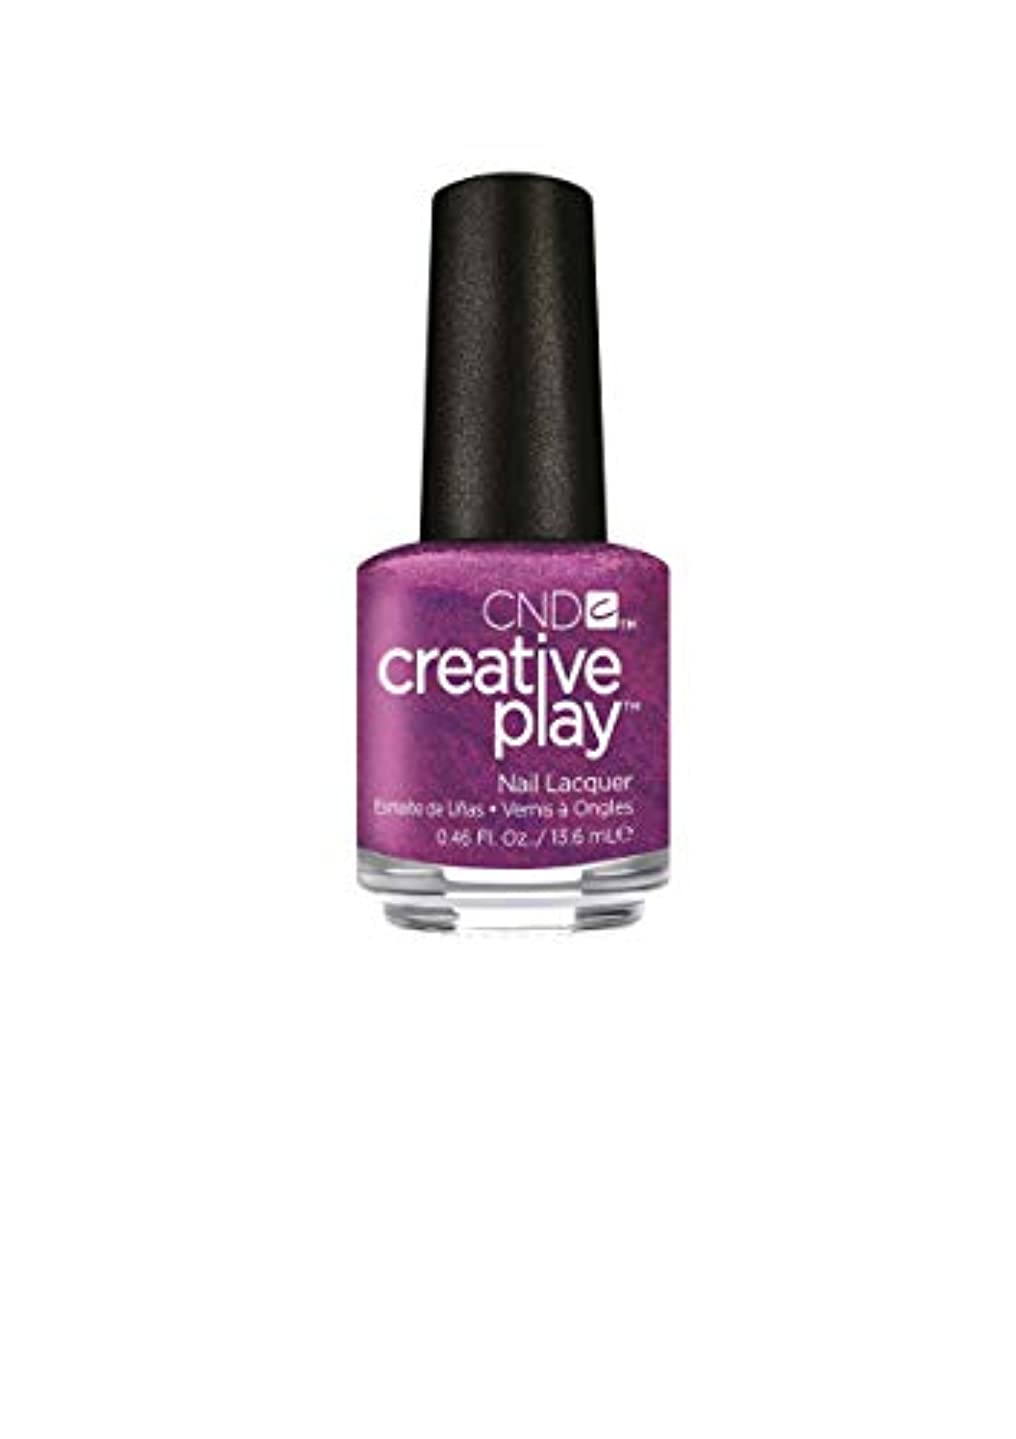 CND Creative Play Lacquer - Raisin' Eyebrows - 0.46oz / 13.6ml